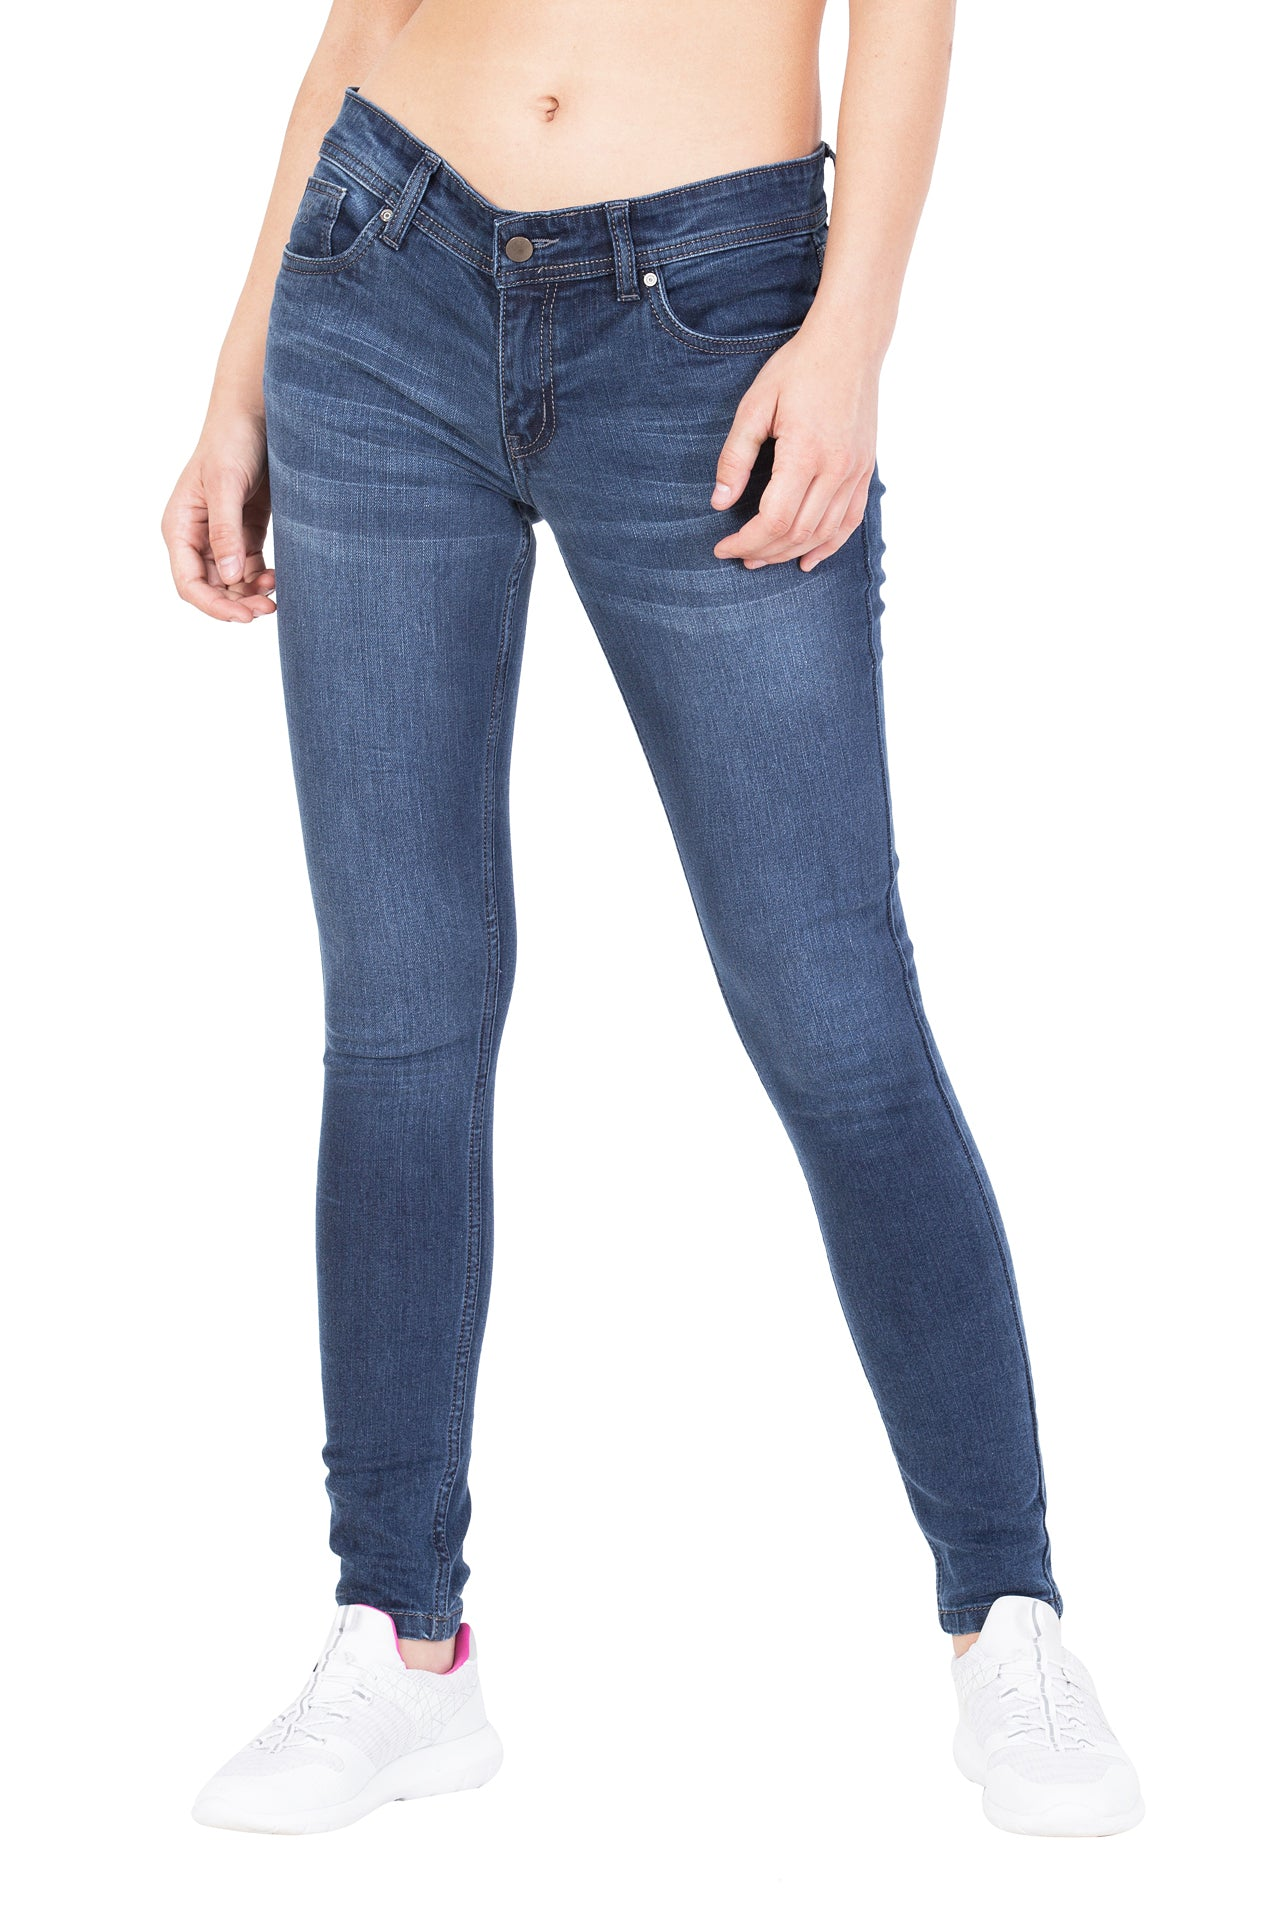 KROSSSTITCH Slim Fit Mid rise Casual Denim Blue Jeans For Women